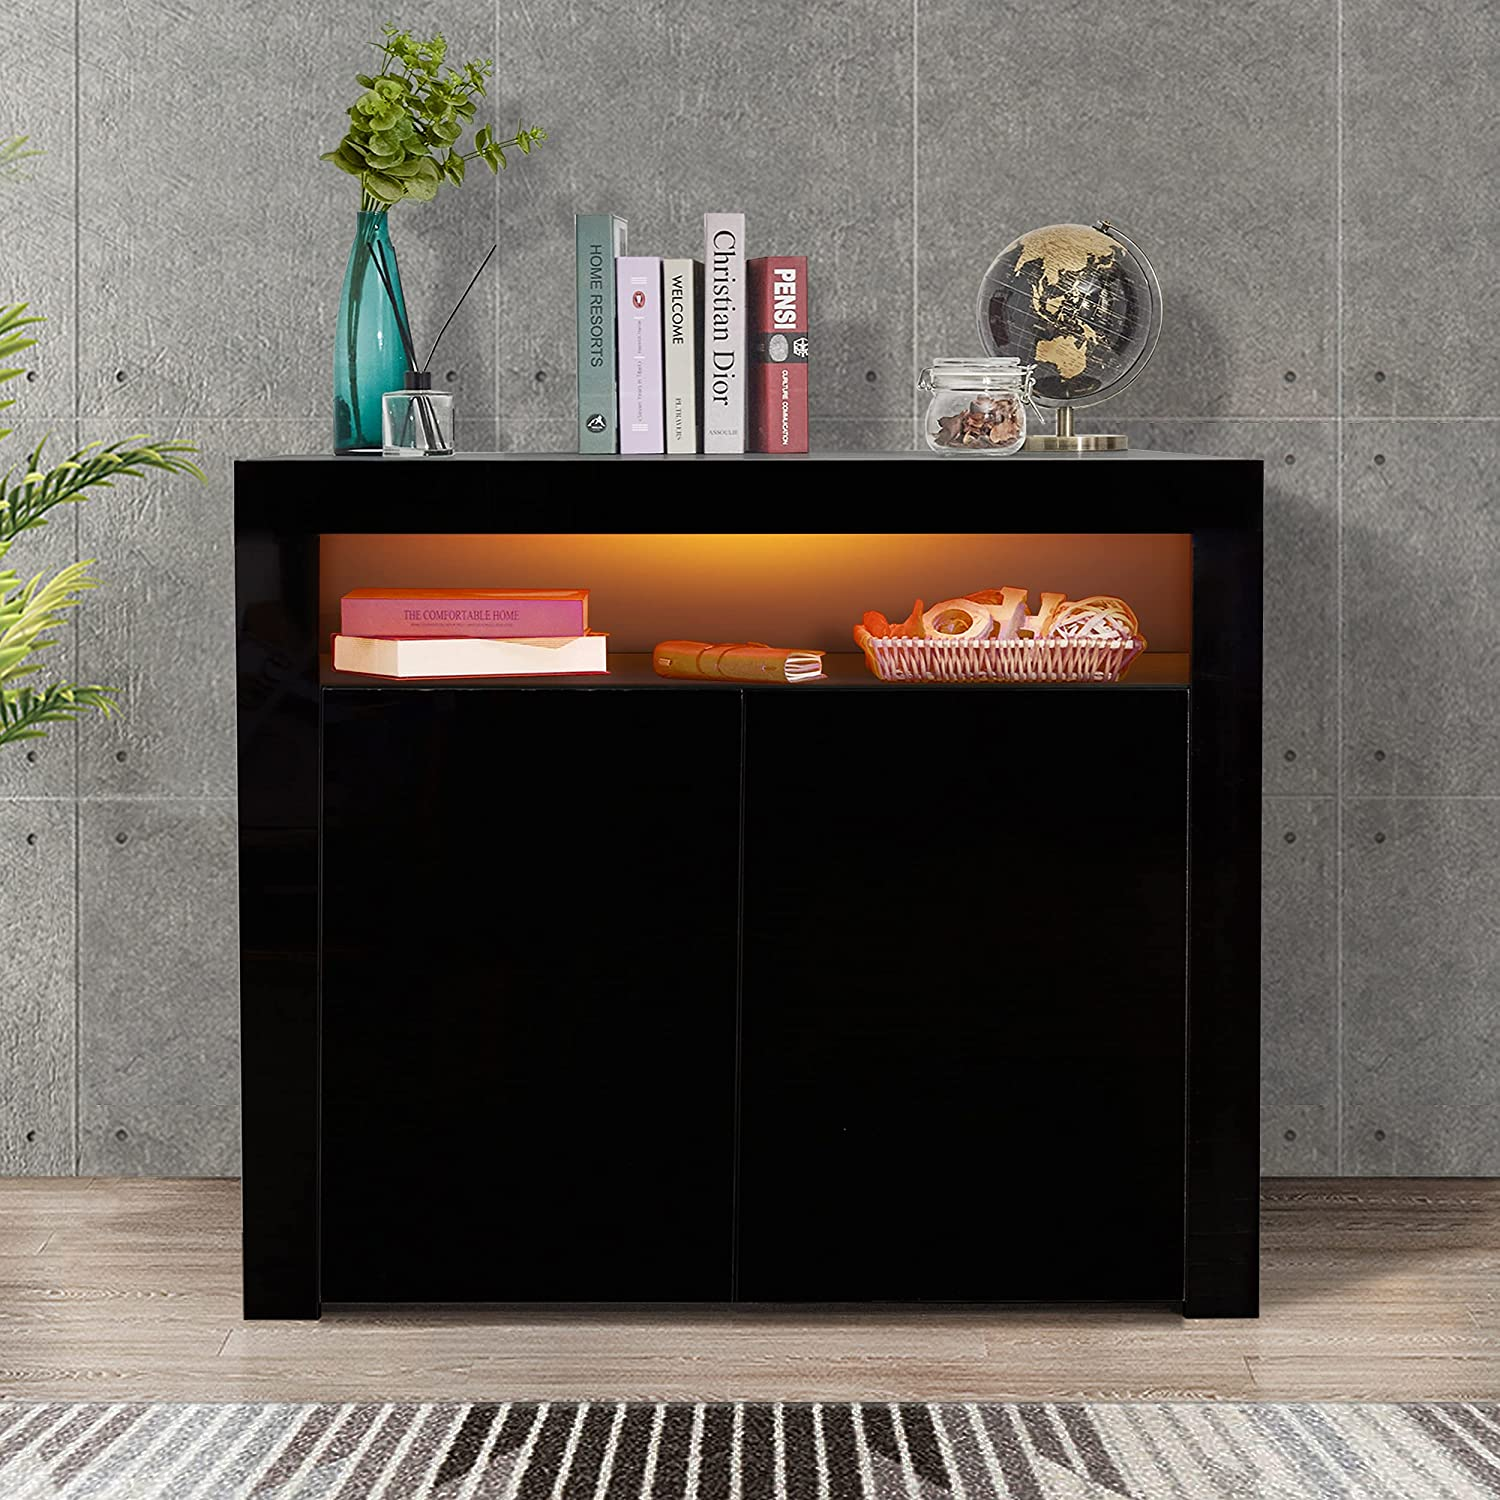 DMAITH Modern High Gloss Sideboard Buffet Storage Cabinet with Led Lights, 1 Open Shelf and 2 Doors, Cupboard for Kitchen, Dining Room and Living Room, Black (002B)